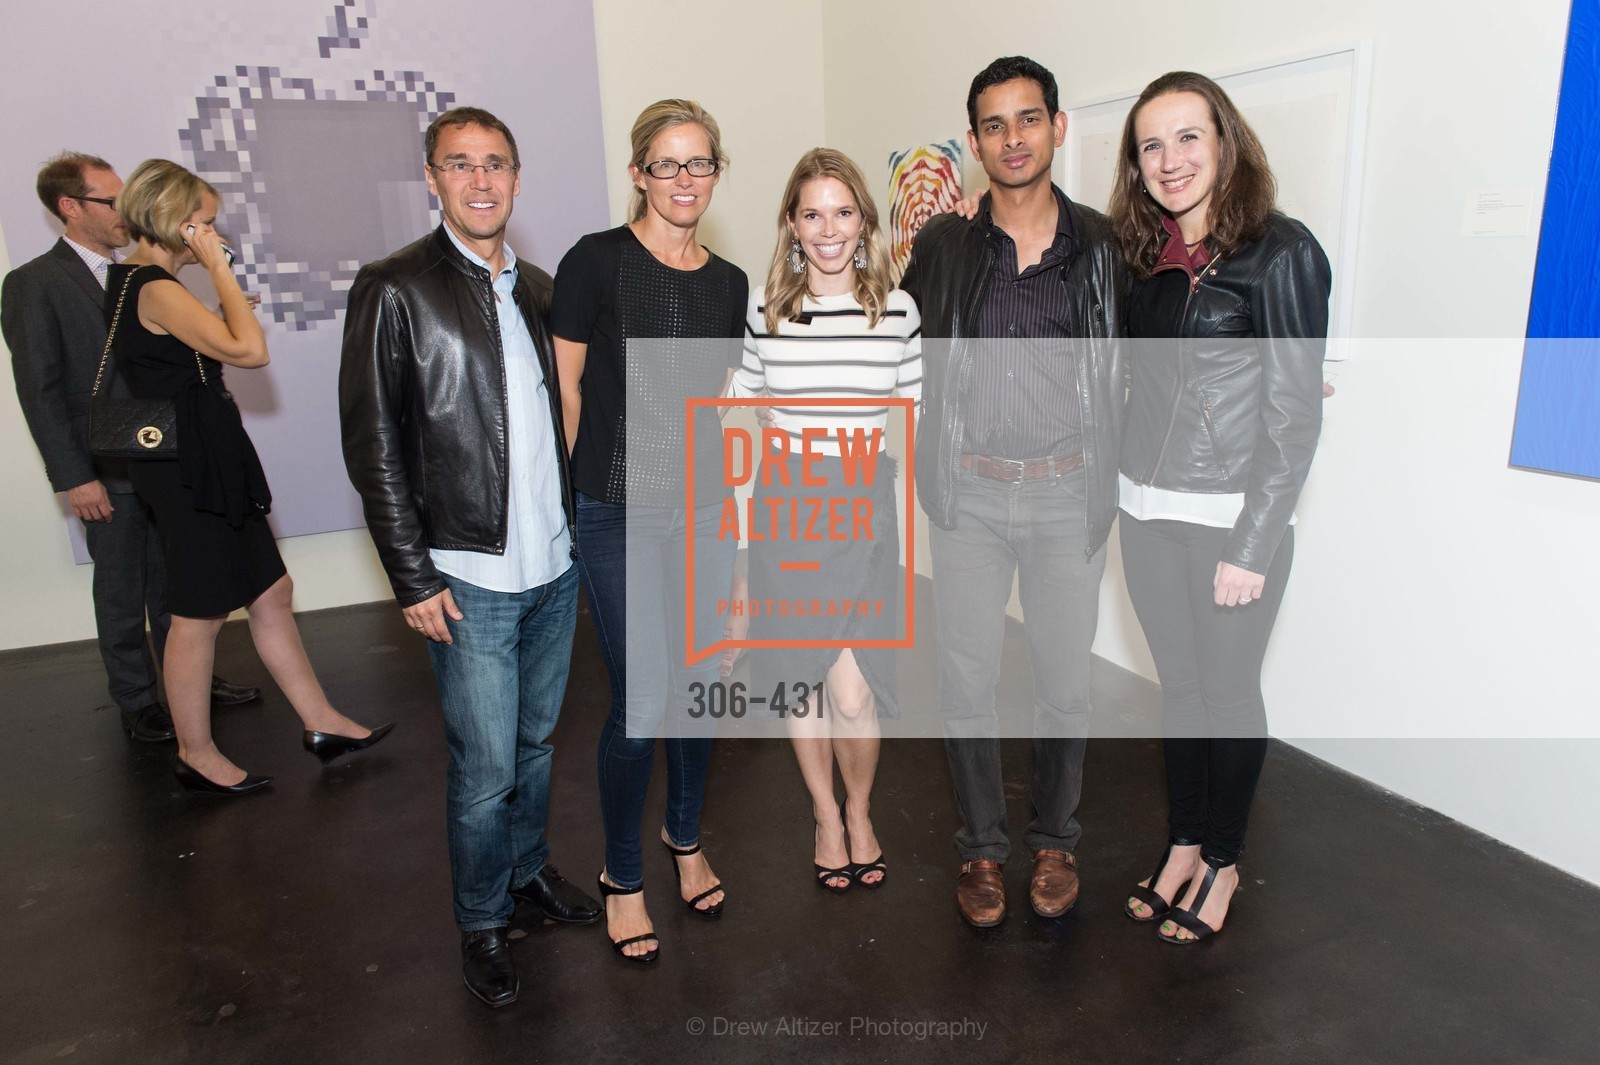 Nicole Simon, Courtney Kremers, Arjunn Rajeswarni, Artsy + Sotheby's Closing Party, Fused. 1401 16th Street, October 30th, 2015